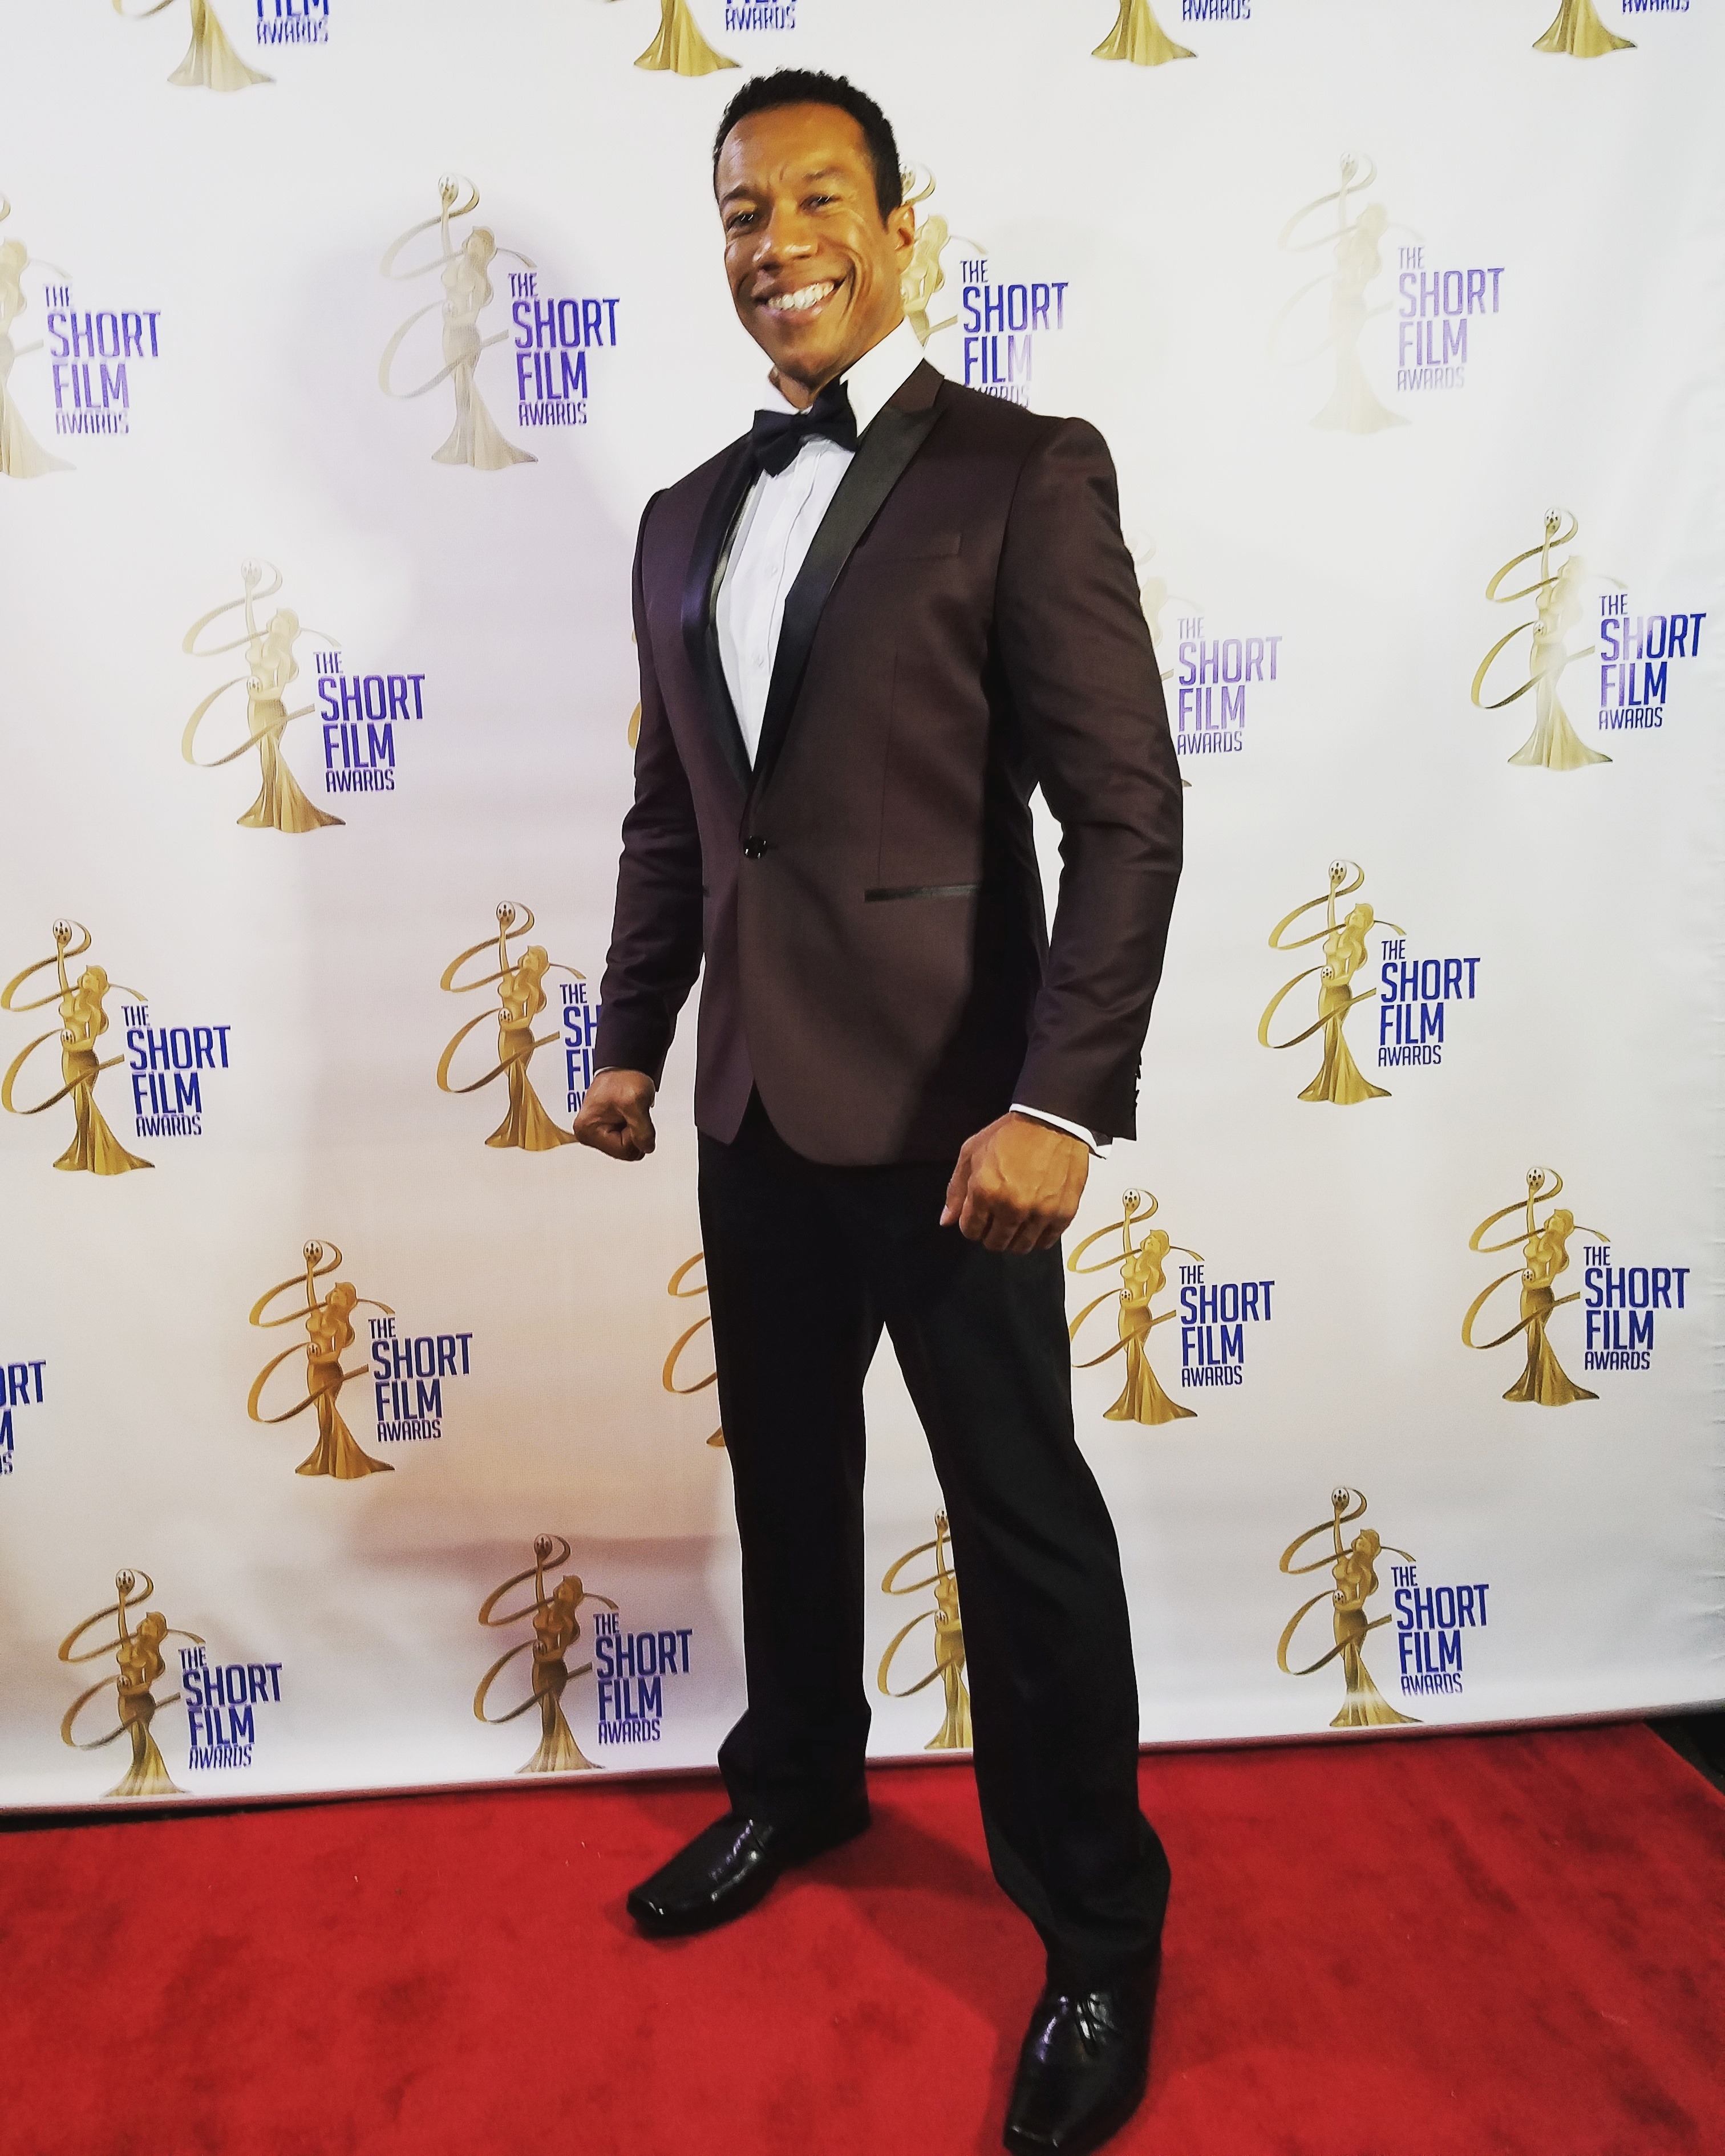 The 3rd Annual SHORT FILM AWARDS